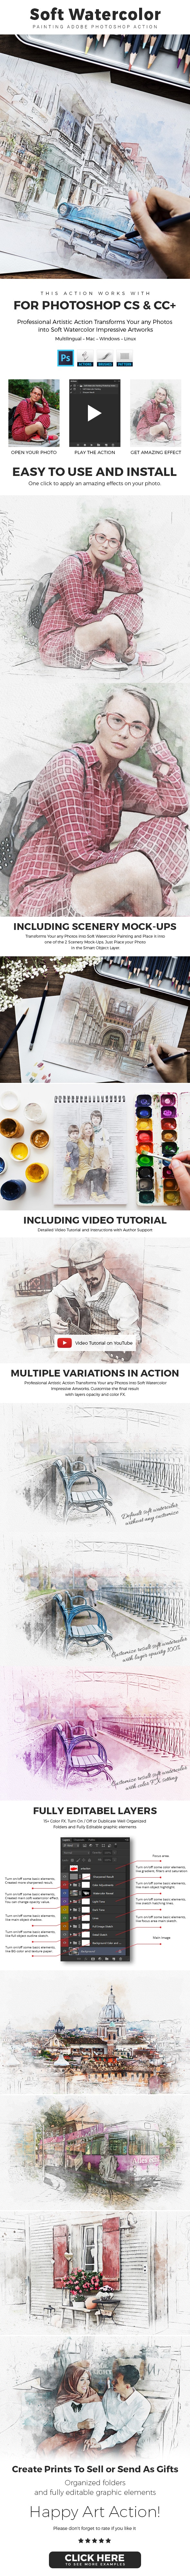 Soft Watercolor Painting Photoshop Action - Photo Effects Actions